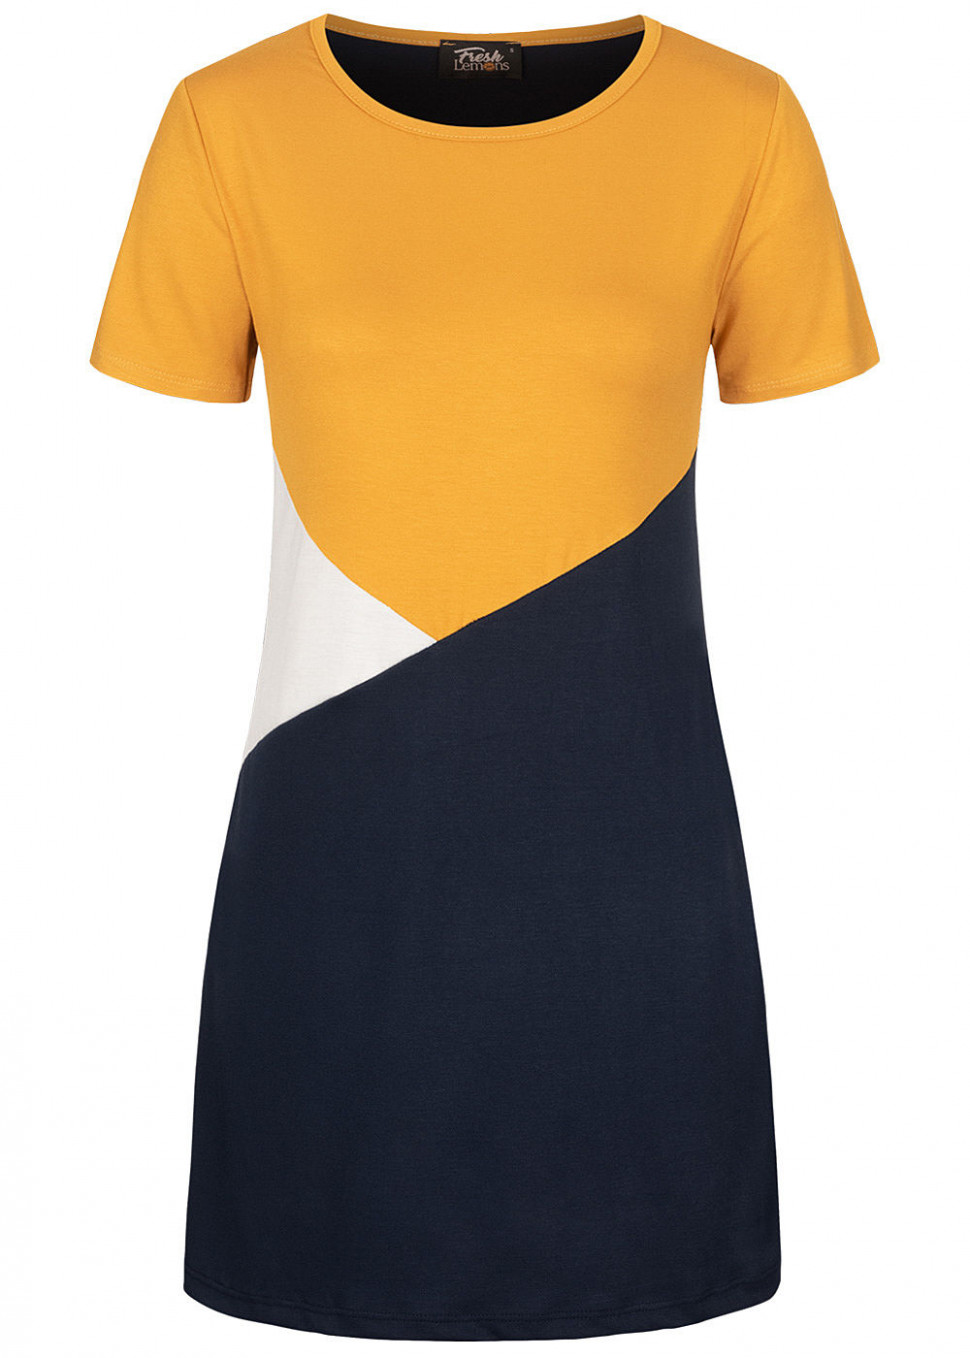 Fresh Lemons Damen Colorblock Mini T Shirt Kleid Gelb Weiss Blau